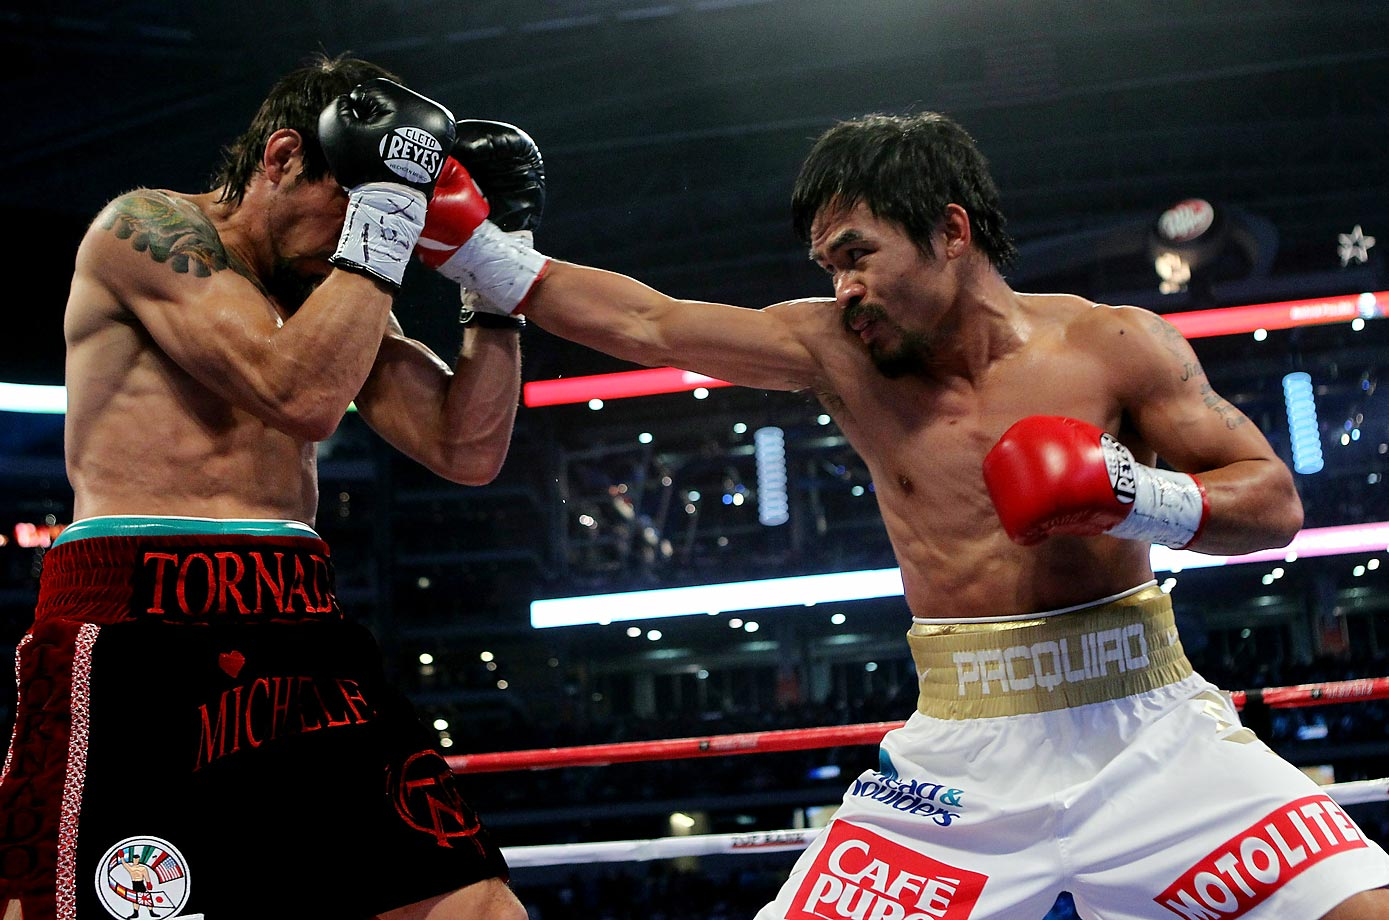 Pacquiao outpointed Margarito for the vacant WBC super welterweight championship before 41,734 fans at Cowboys Stadium. The victory gave the Filipino an eighth world title in eight different weight classes (from 112 to 154 pounds).